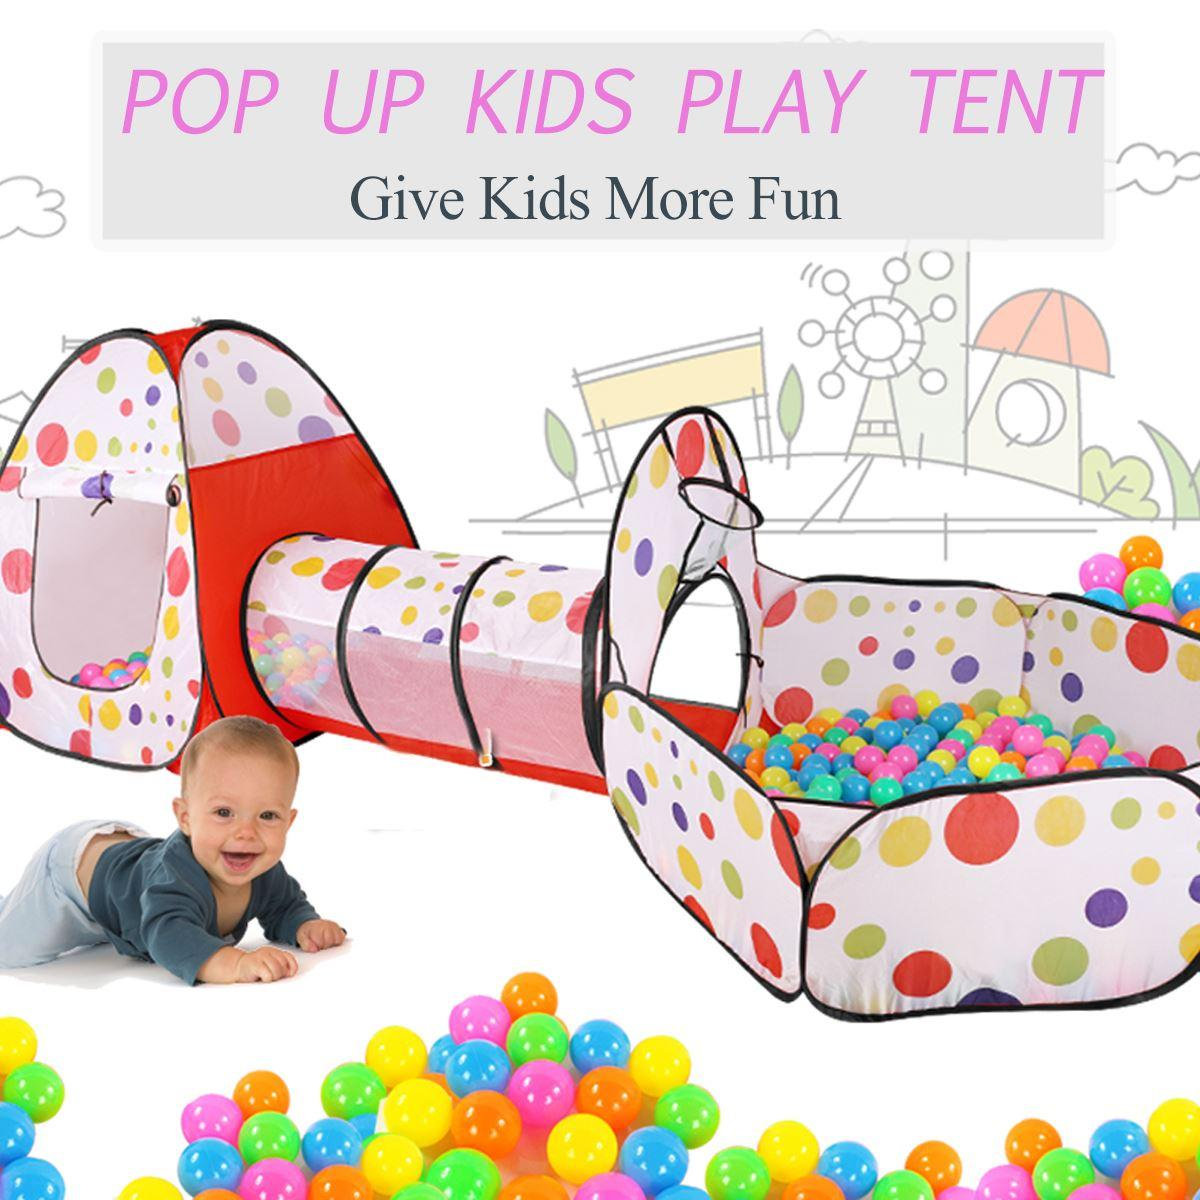 3 In 1 Pop Up Play Tent Playhouse Tunnel Ball Pit Baby Play Gift Kids Indoor Outdoor Playhouse Kids Play Gaming Toys House Tents For Kids Indoor Play Tents ...  sc 1 st  DHgate.com & 3 In 1 Pop Up Play Tent Playhouse Tunnel Ball Pit Baby Play Gift ...